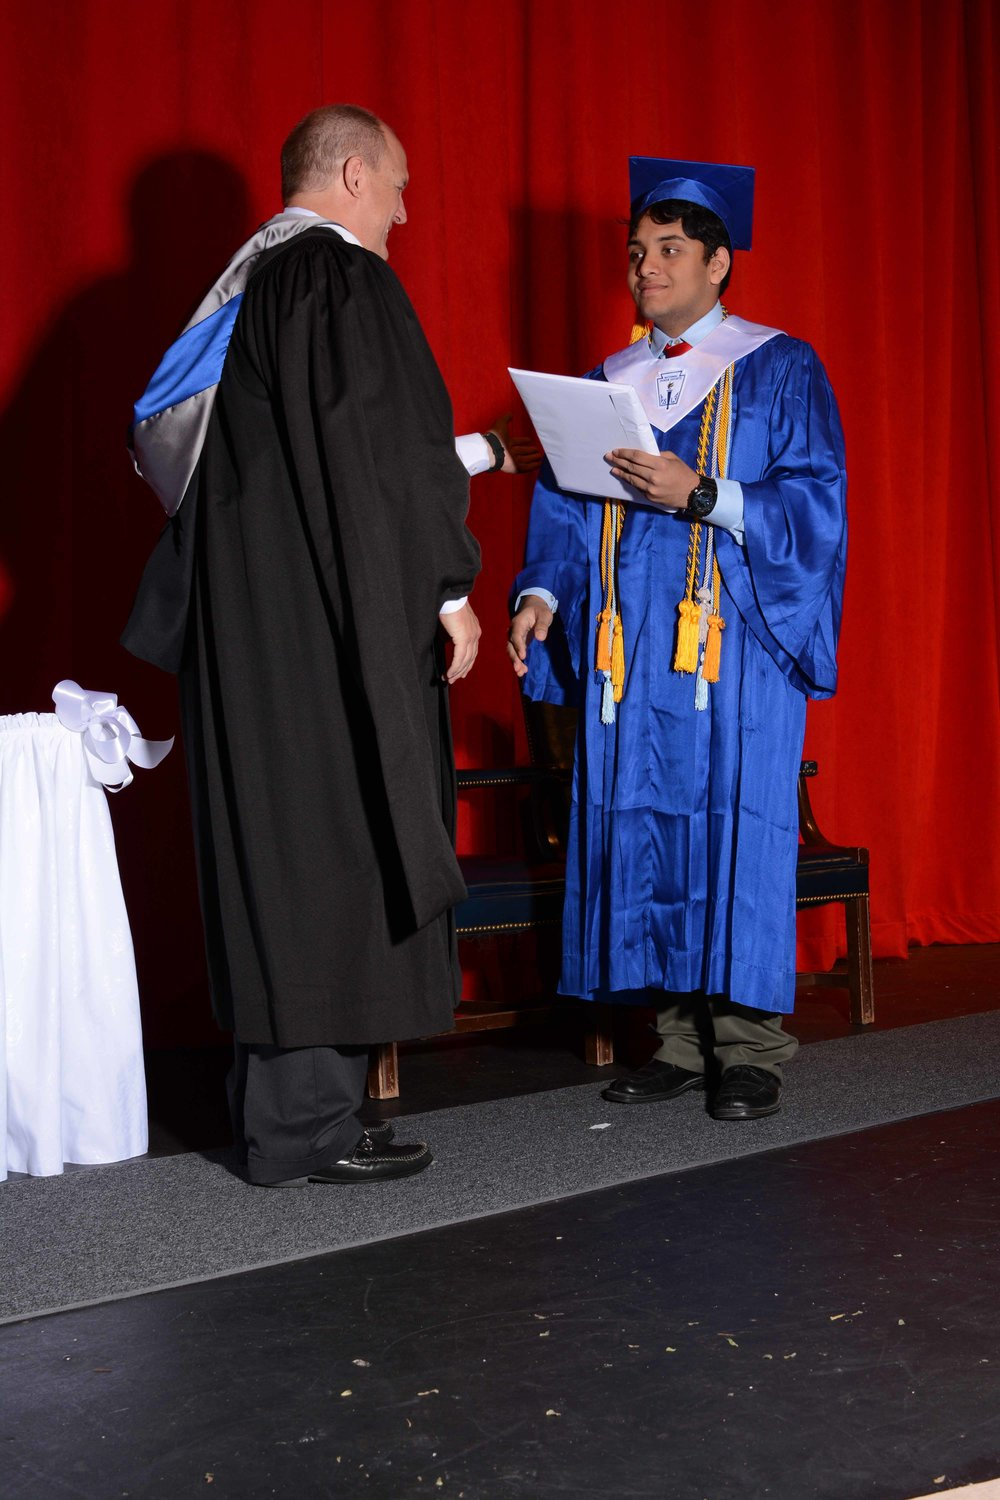 May15 HardingGraduation40.jpg